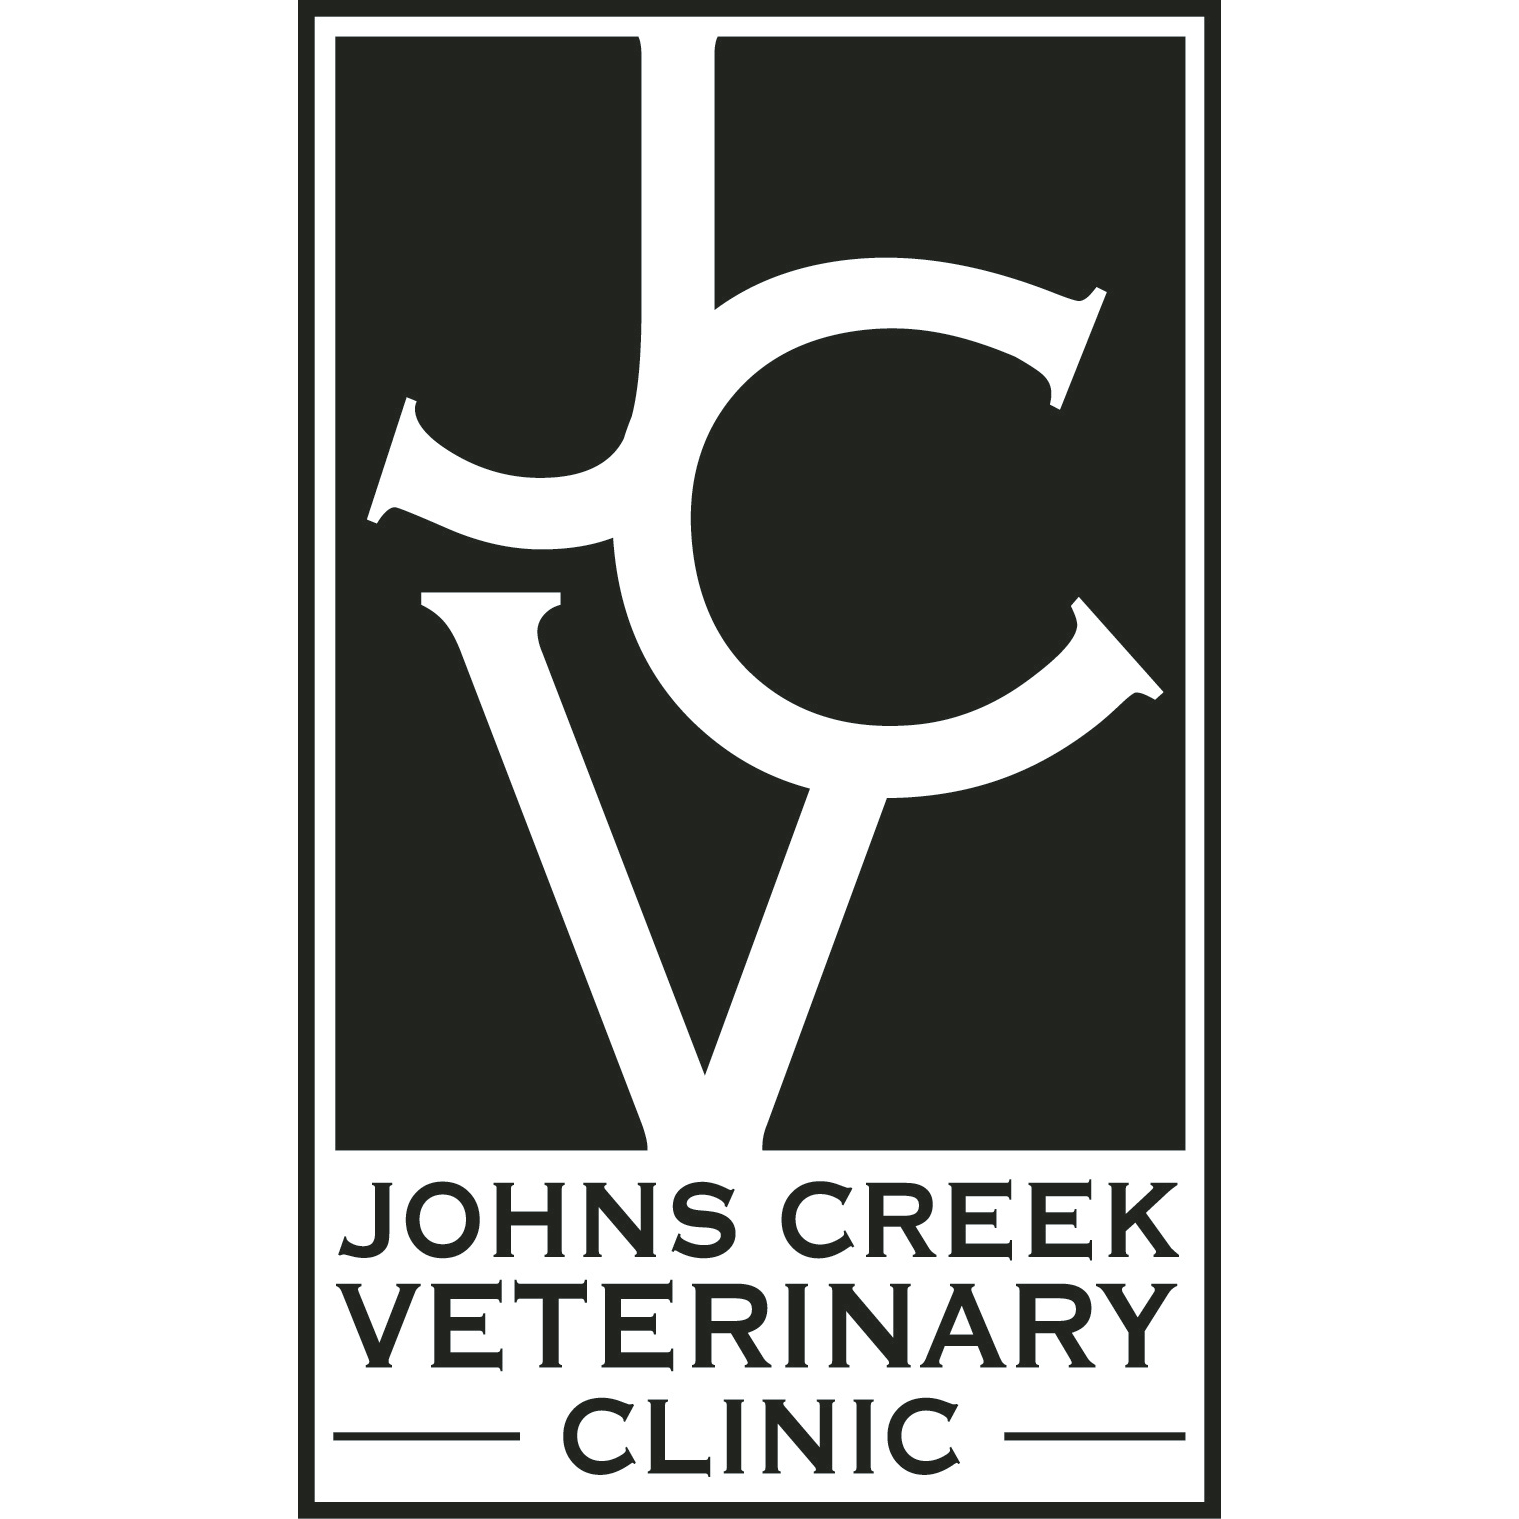 johns creek veterinary clinic coupons near me in johns